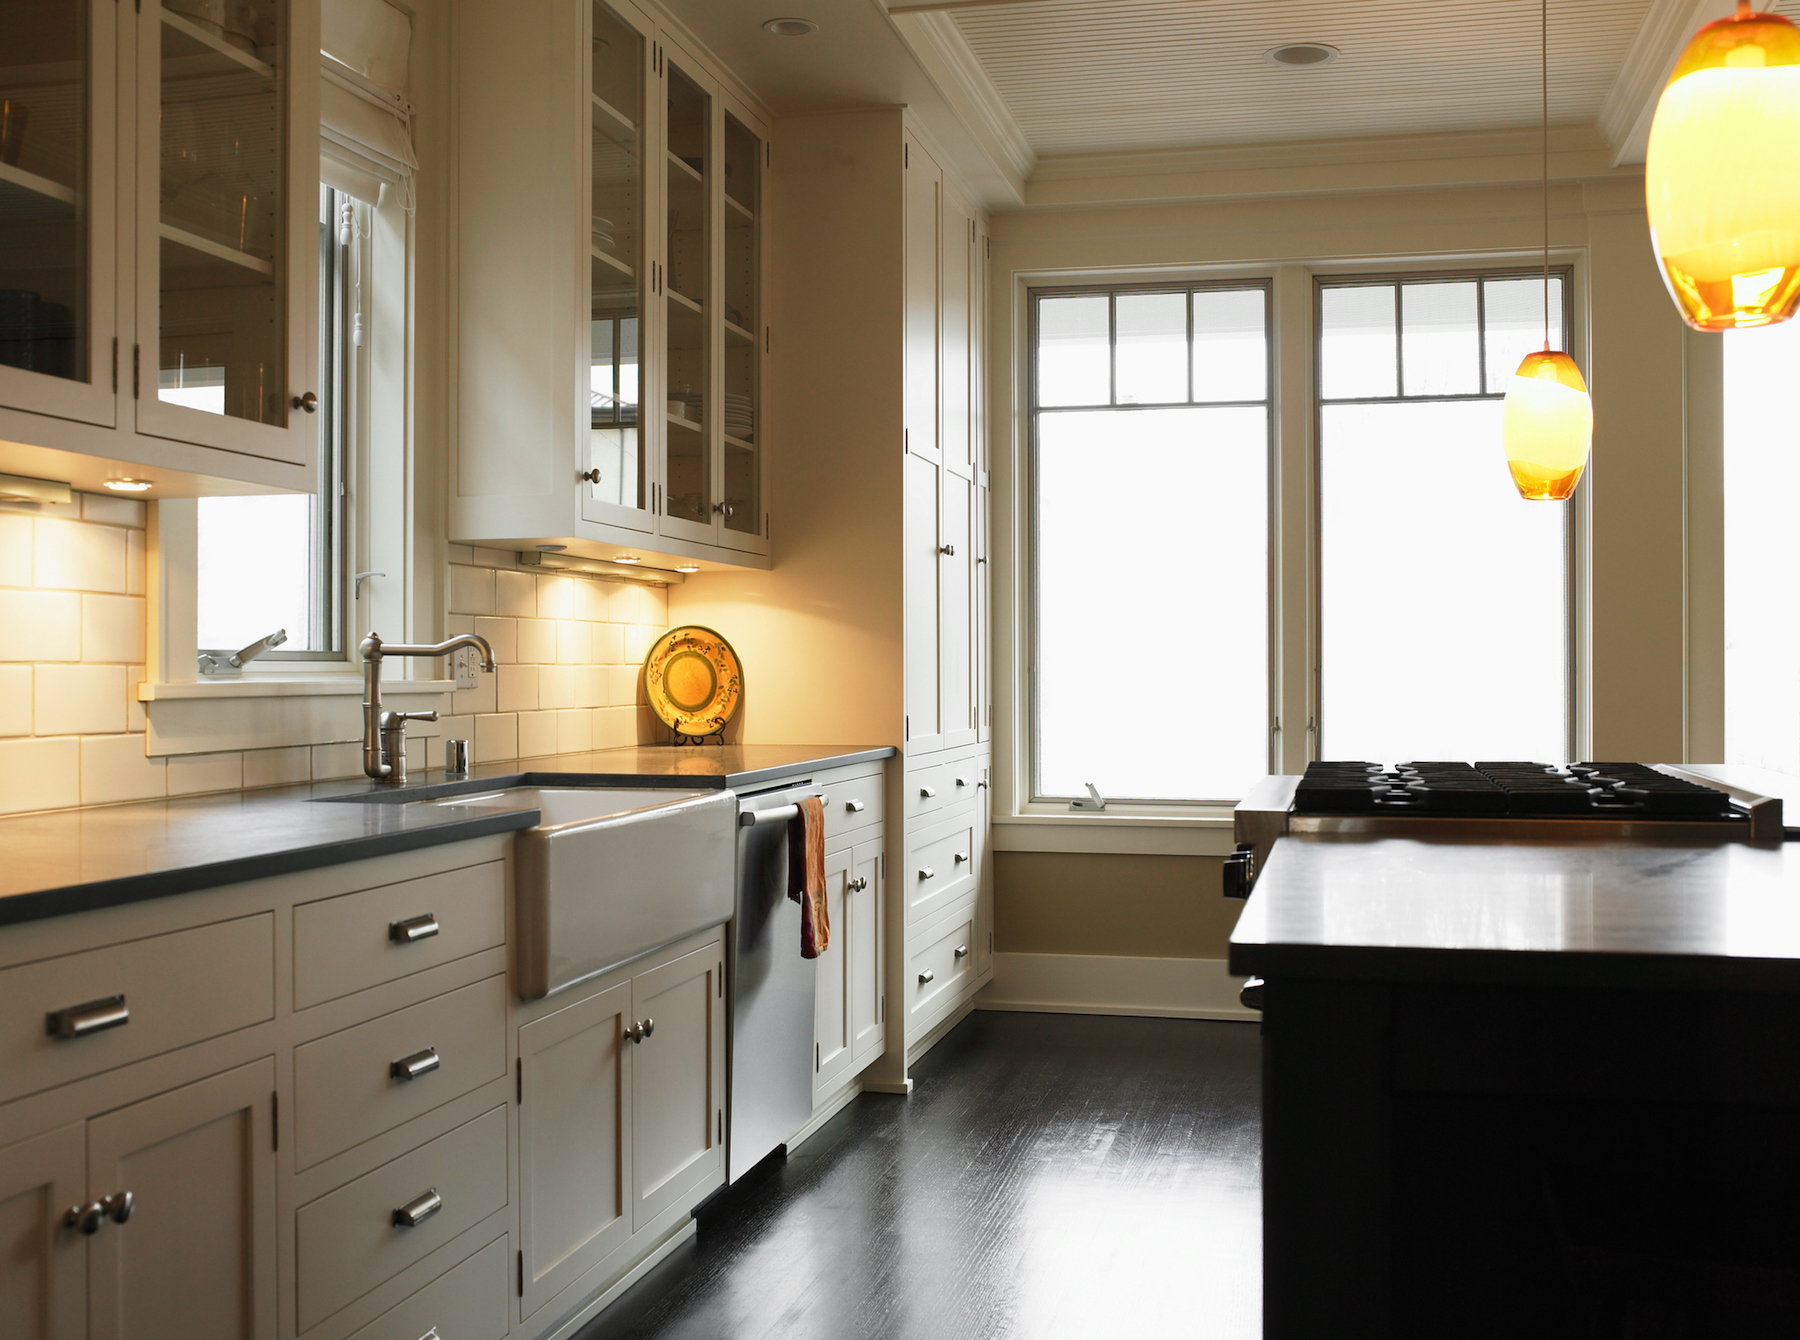 Kitchen Lamps Solutions For Food Prep Zone